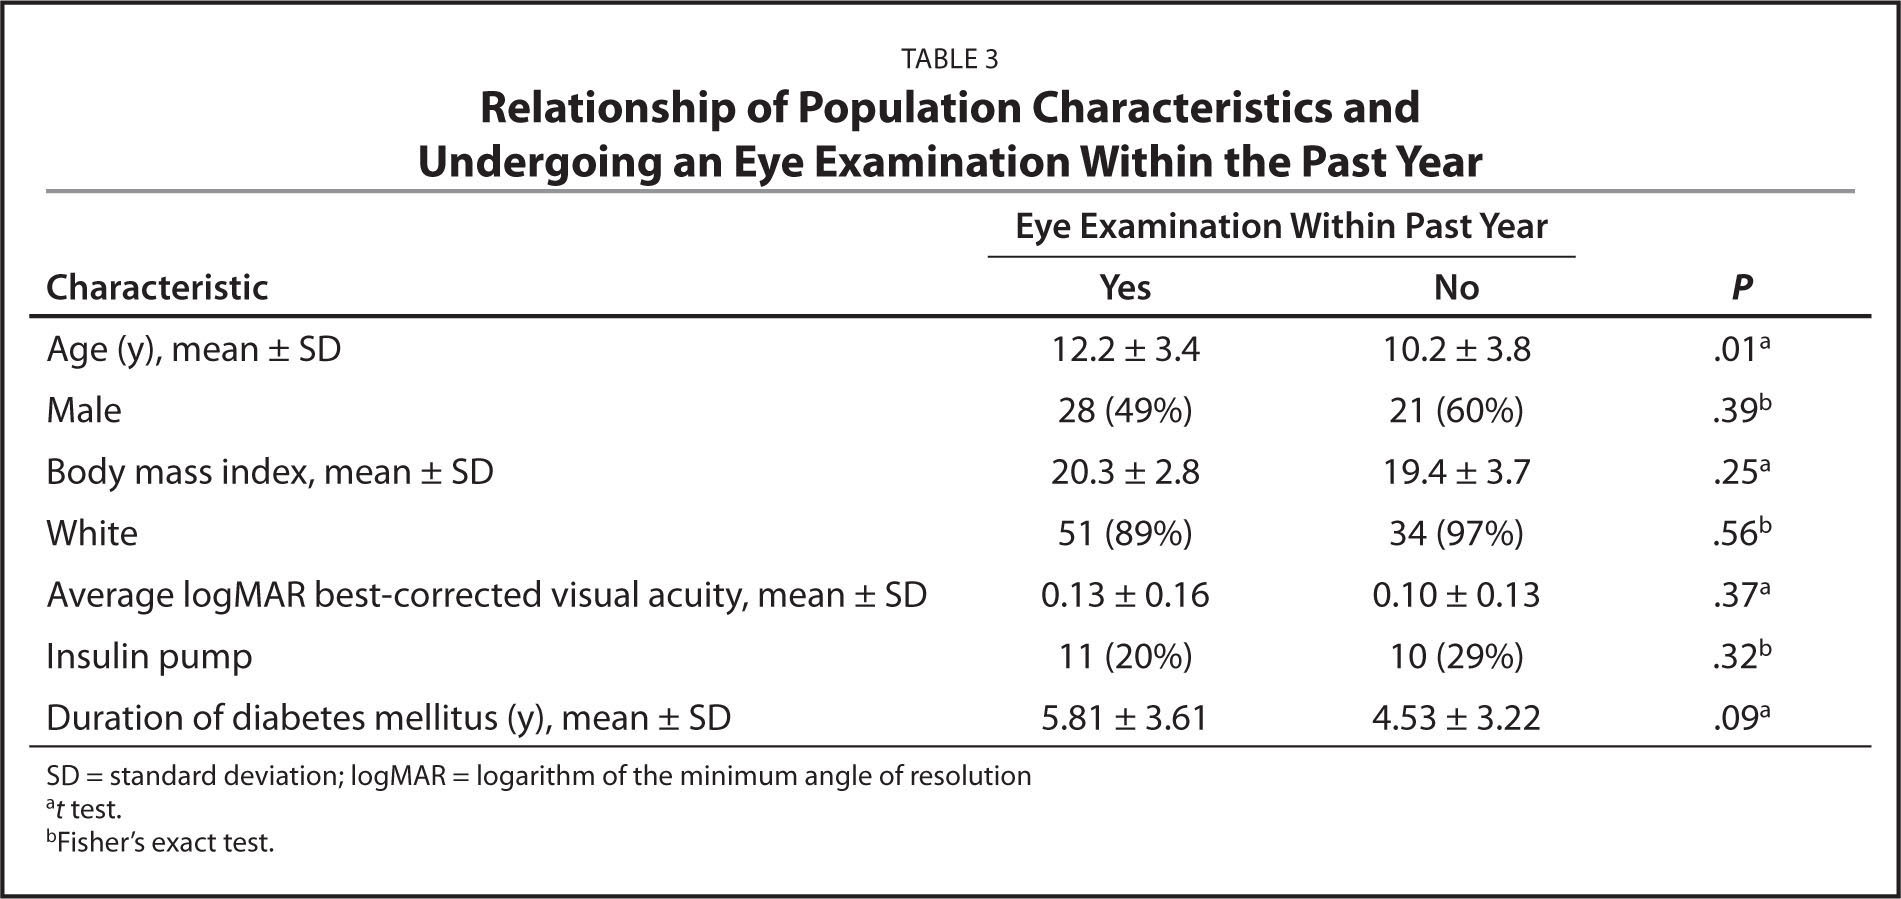 Relationship of Population Characteristics and Undergoing an Eye Examination Within the Past Year